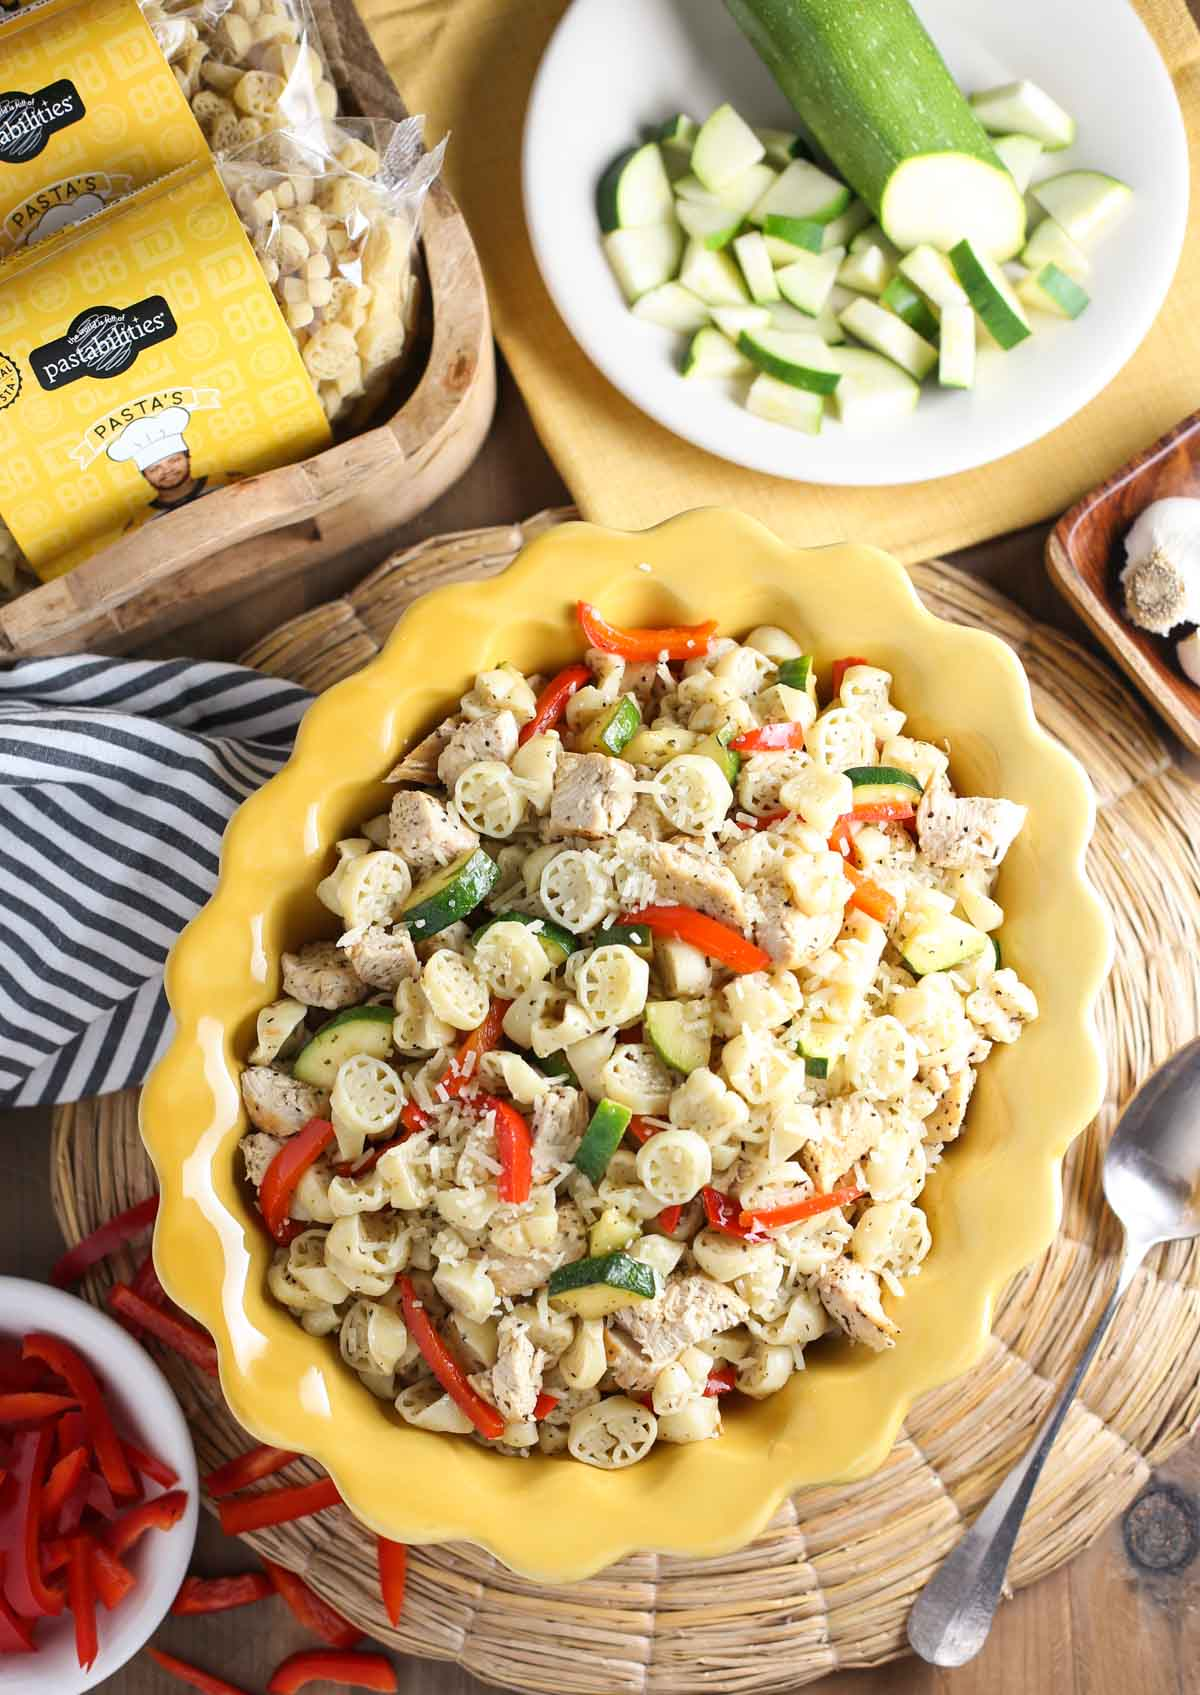 Boston Bruins Pasta's Pasta Primavera with Chicken | Light and delicious recipe your family will love! | Go Bruins! | WorldofPastabilities.com